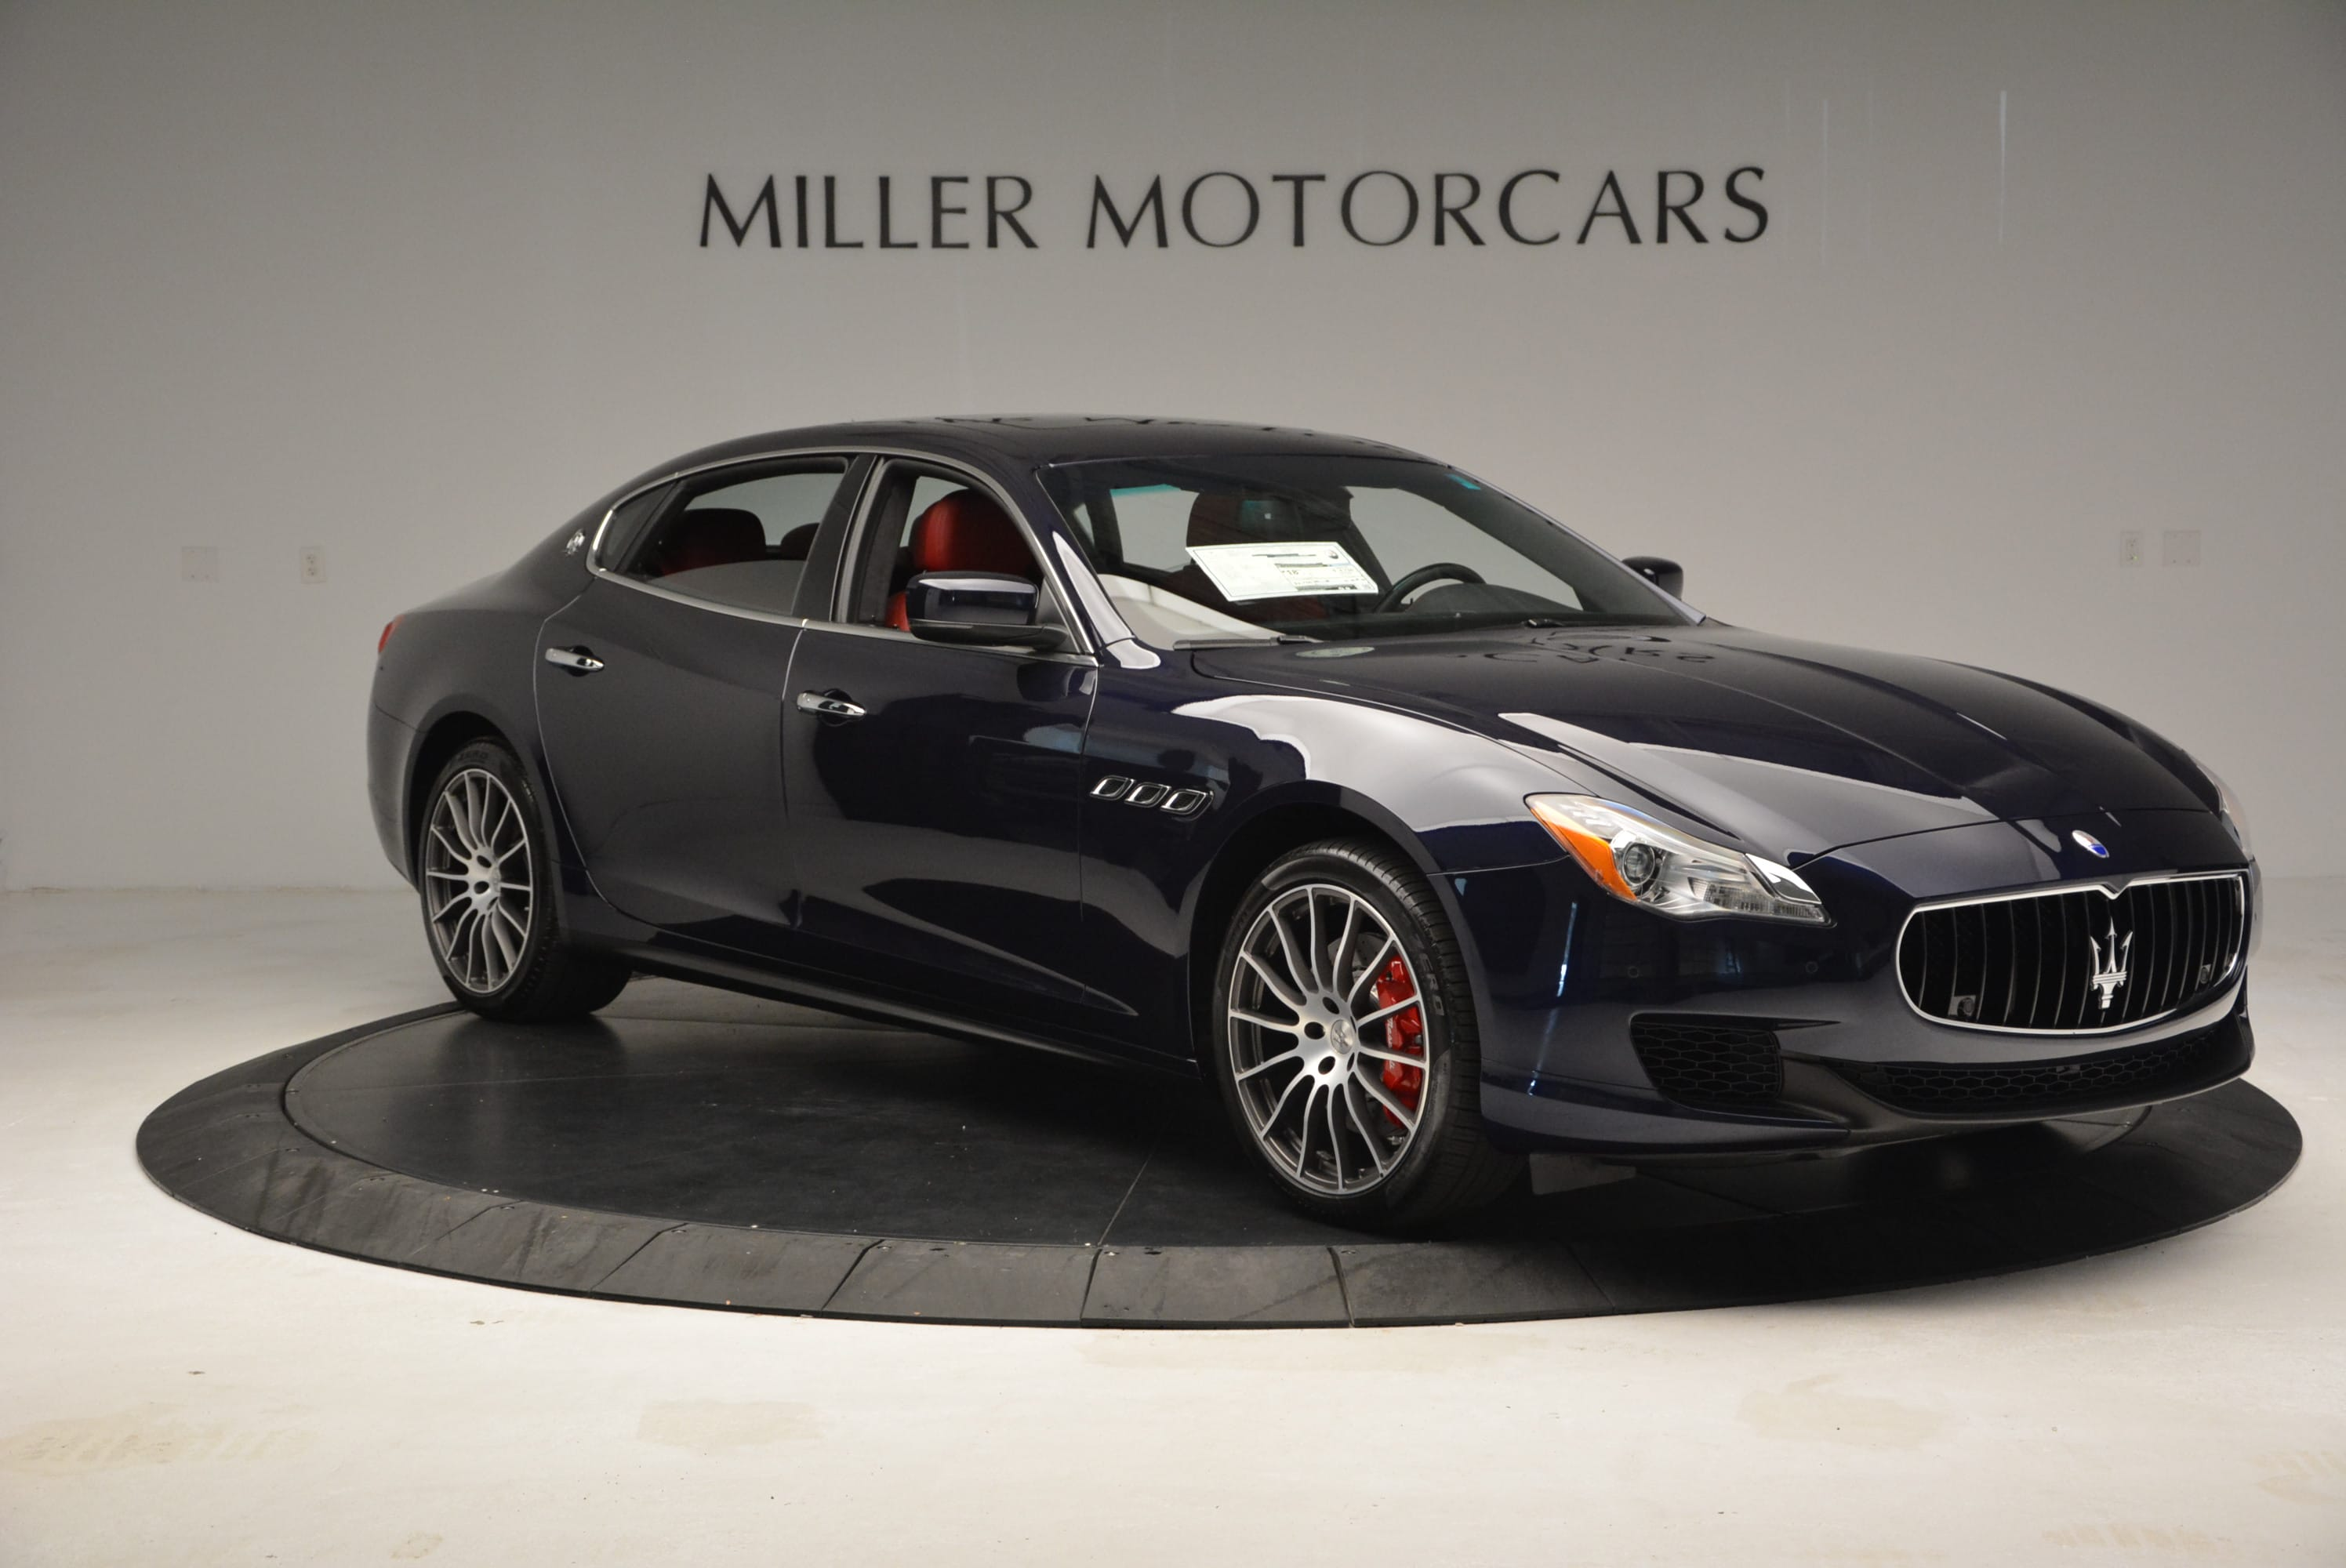 Miller Motorcars Luxury Car Dealer Exotic Car Dealer Html